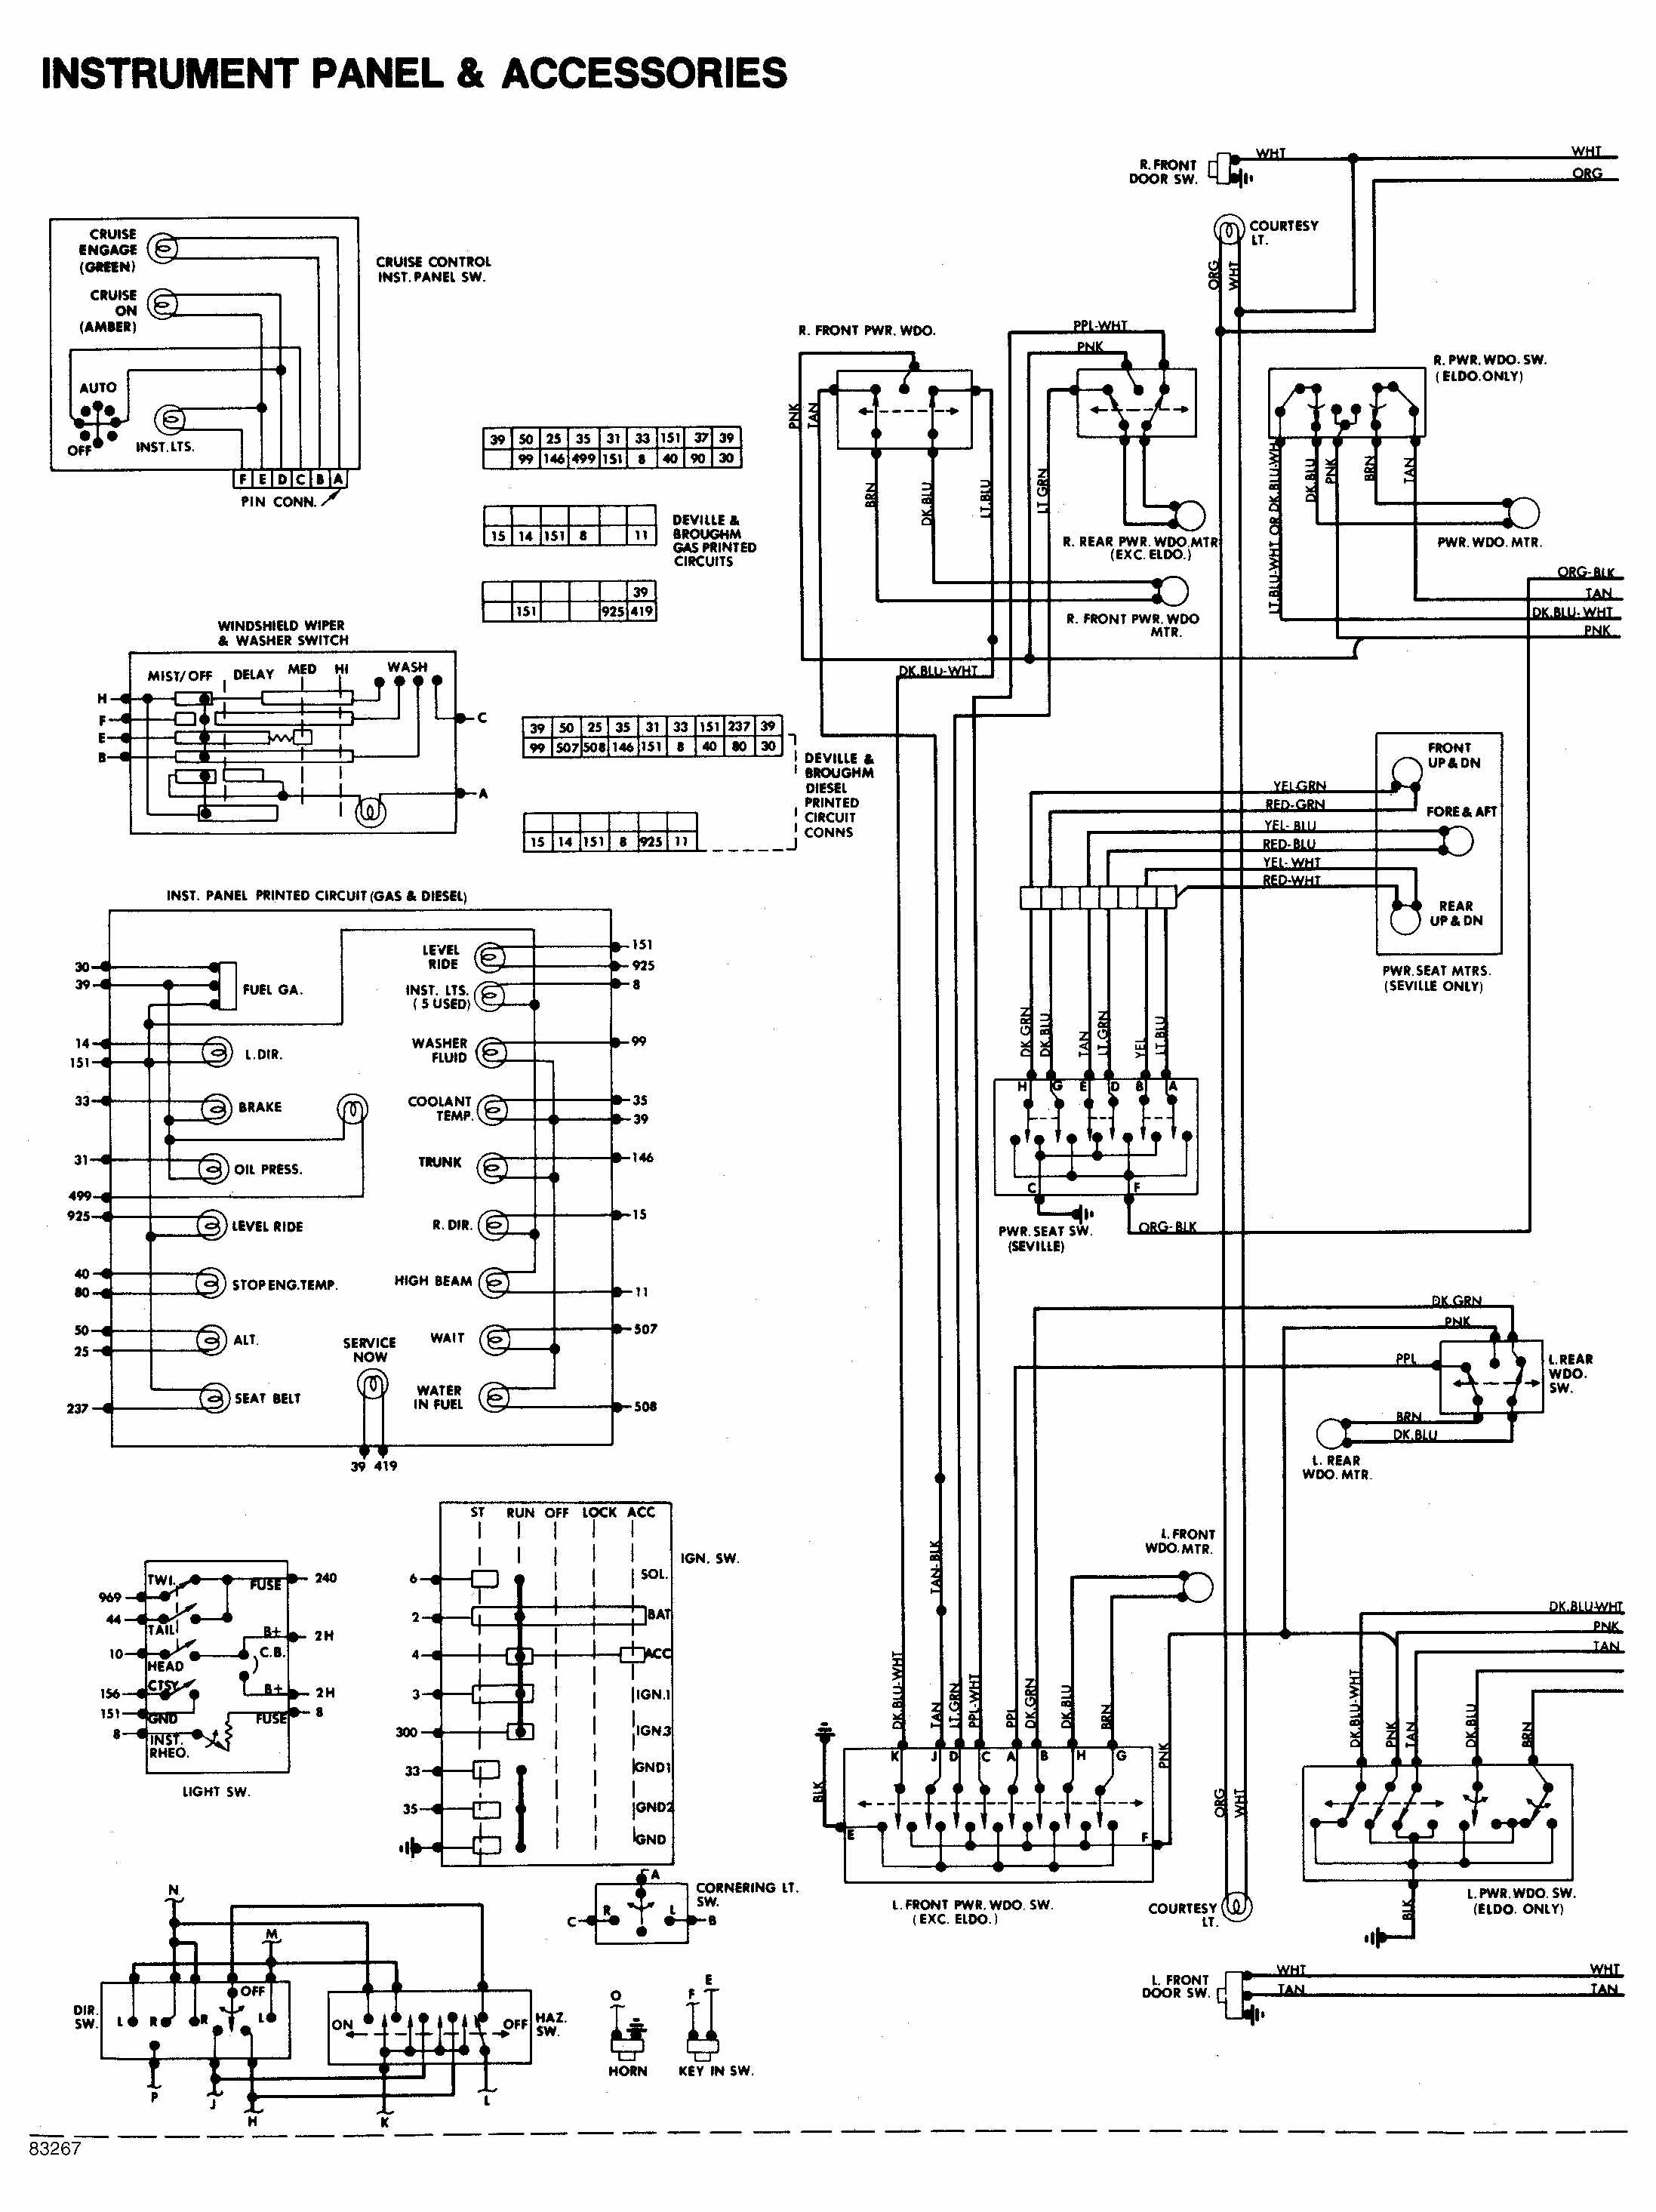 instrument panel and accessories wiring diagram of 1984 cadillac deville 1981 el camino wiring diagram 71 el camino wiring diagram \u2022 wiring  at gsmx.co